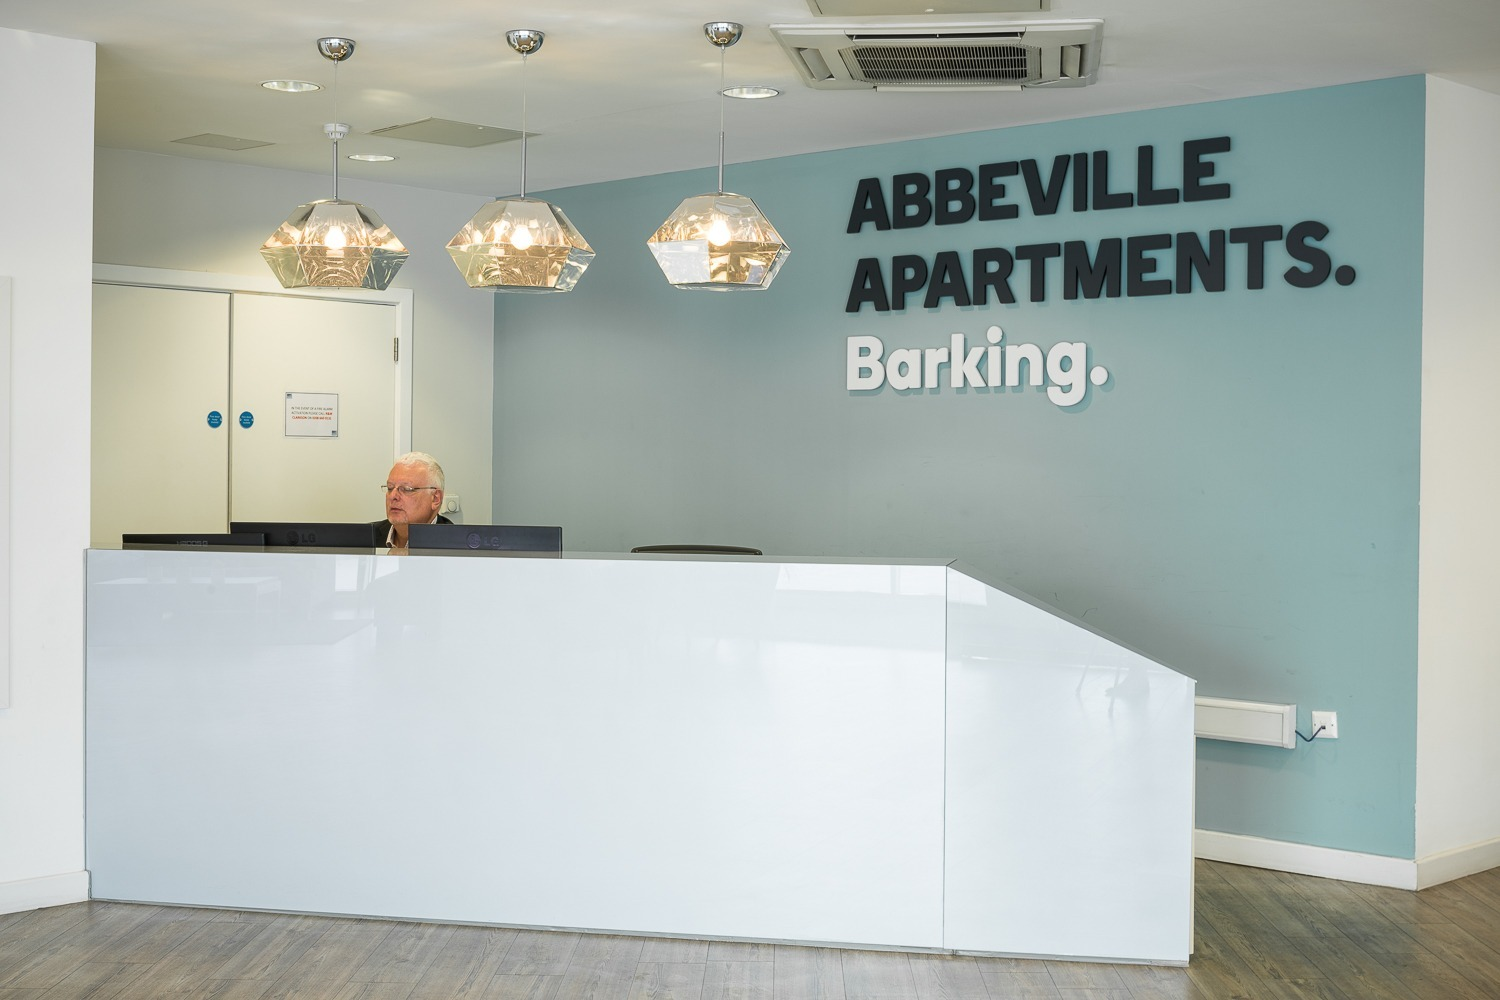 Abbeville Apartments, London Road Image 6